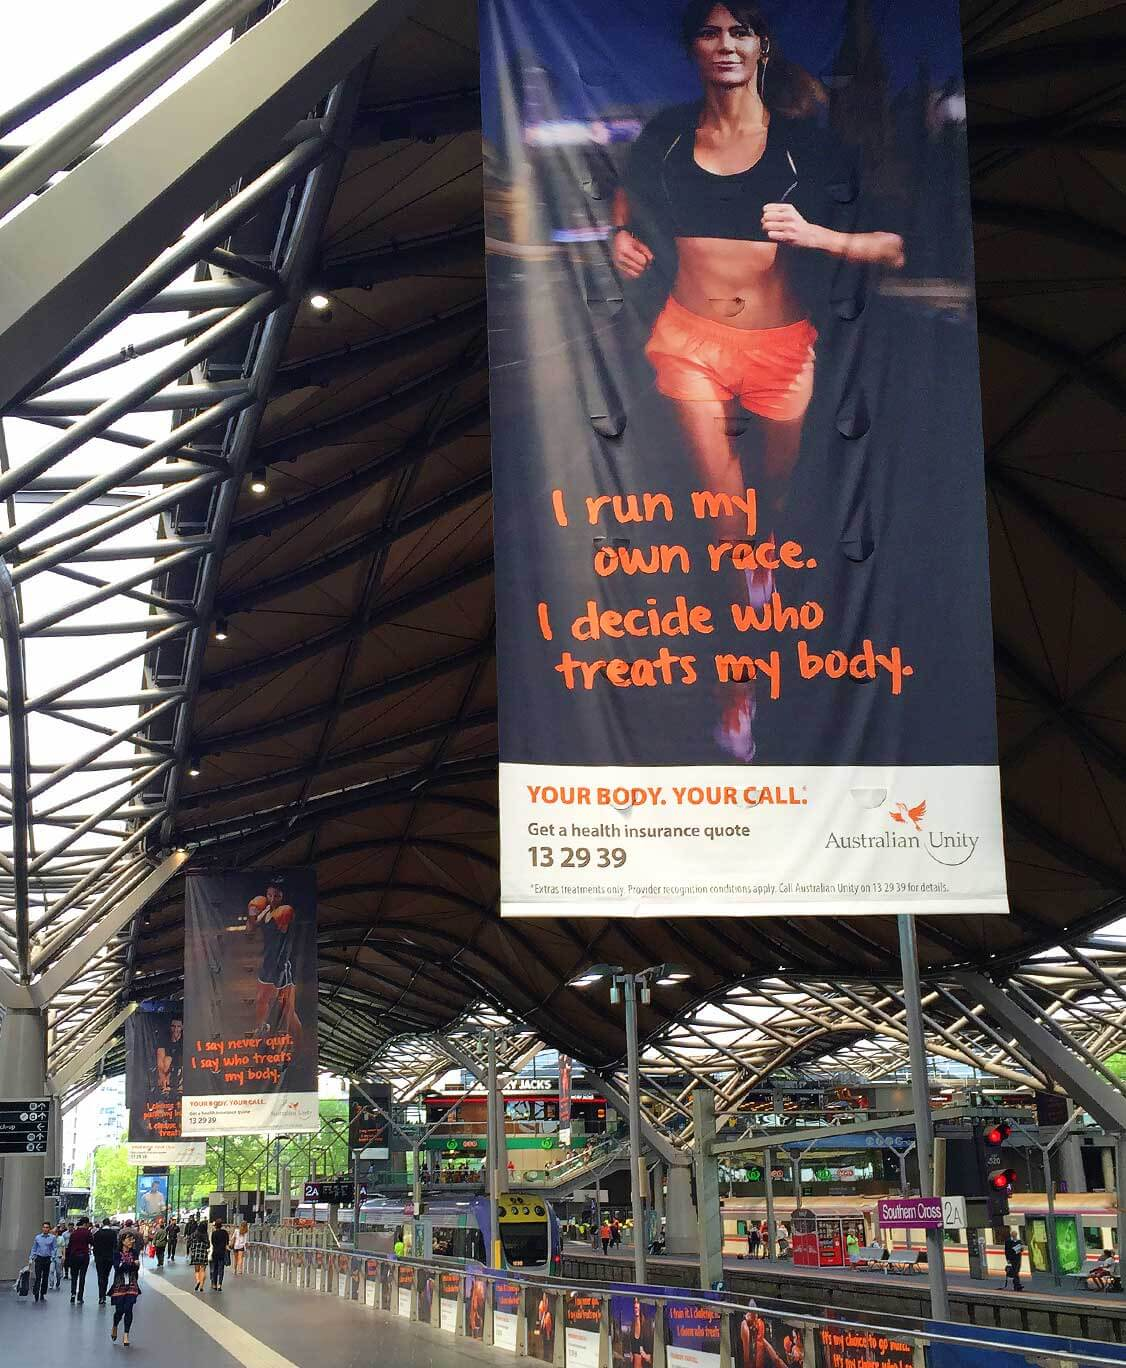 Australian Unity | Large Format Outdoor Banners | Your Body. Your Call. campaign